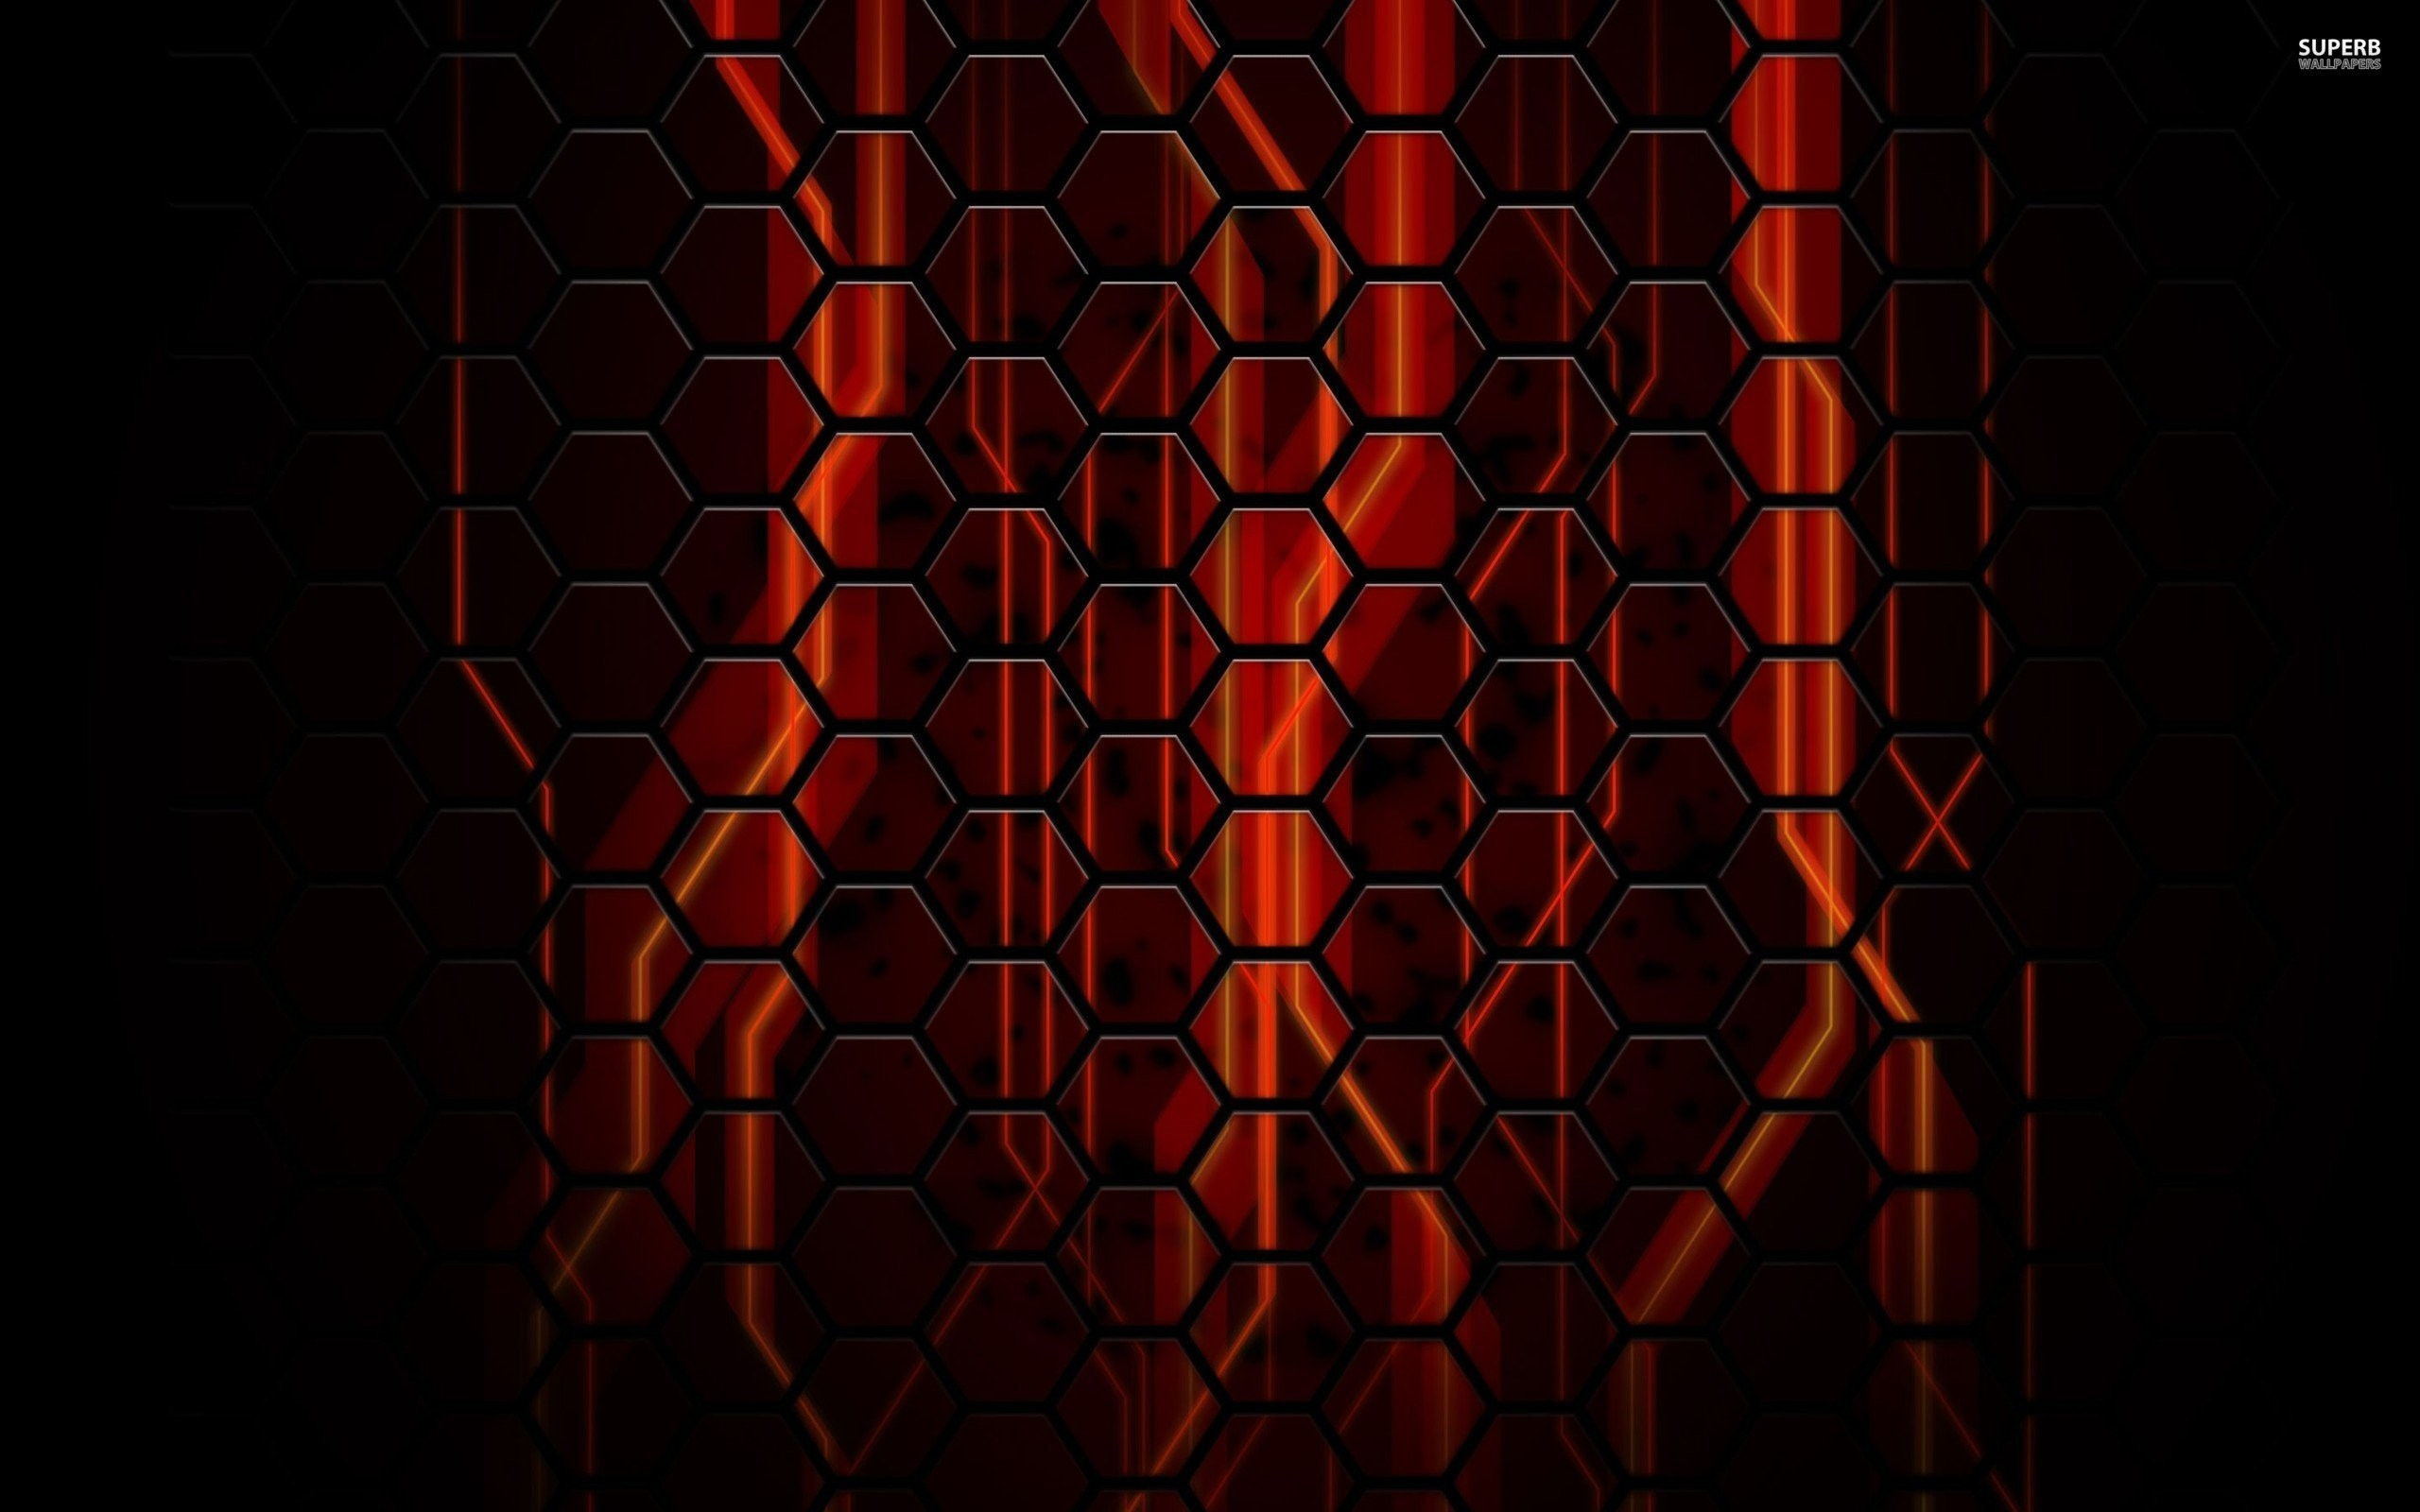 honeycomb background hd hexagon wallpapers backgrounds social desktop pattern android abstract tous fonds les iphone hive neon amazing keep private